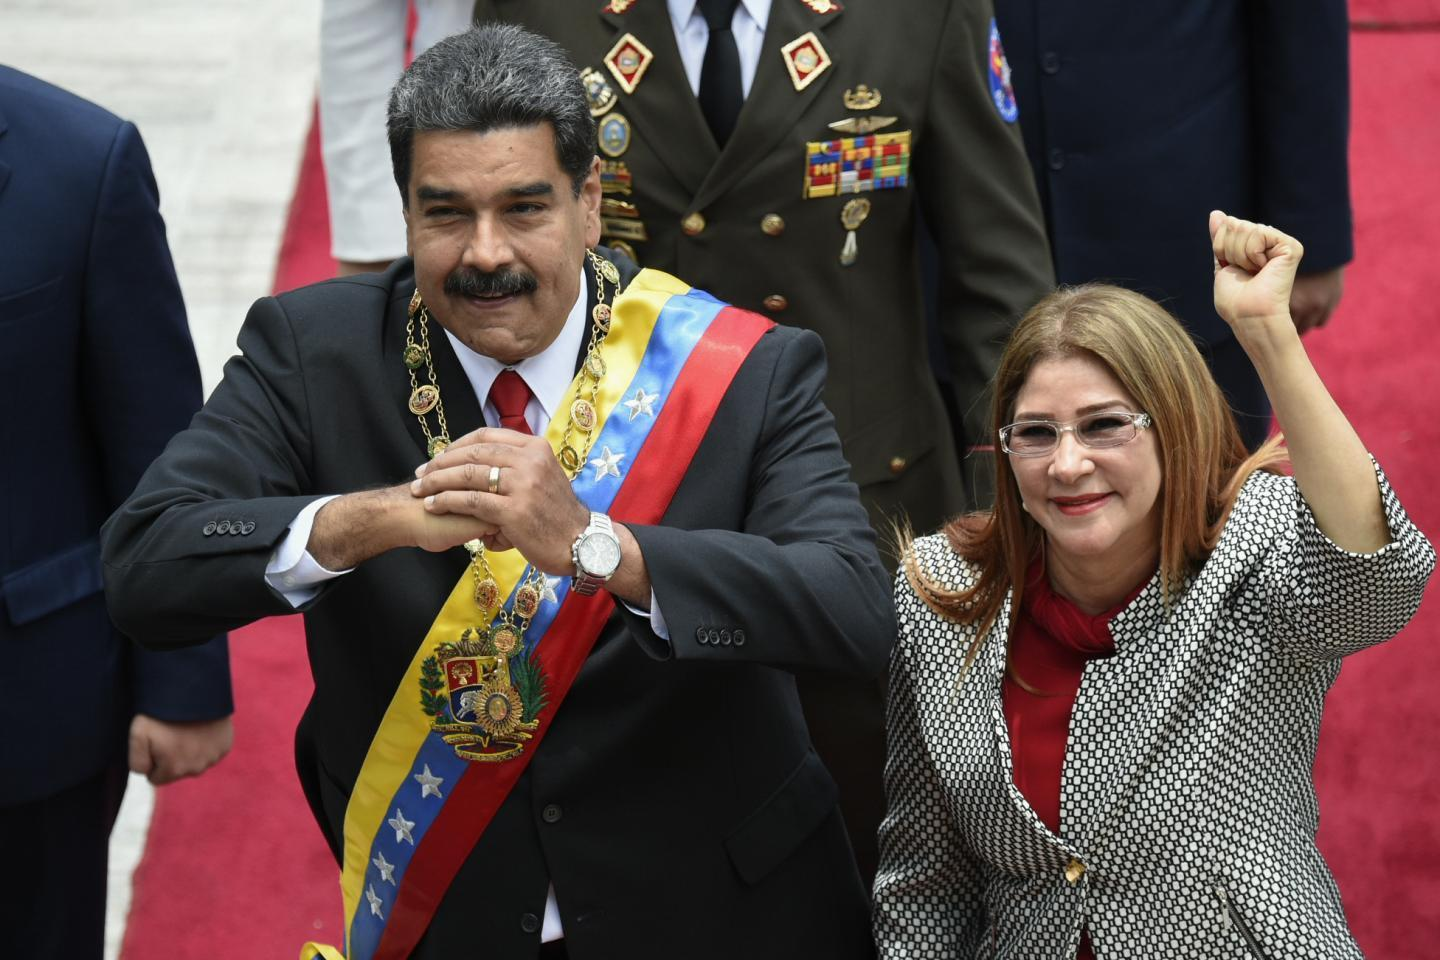 Who is Cilia Flores? Venezuela's first lady sanctioned by the U.S. Department of Treasury https://t.co/htXQAcojAm https://t.co/QsbXXtvvs1